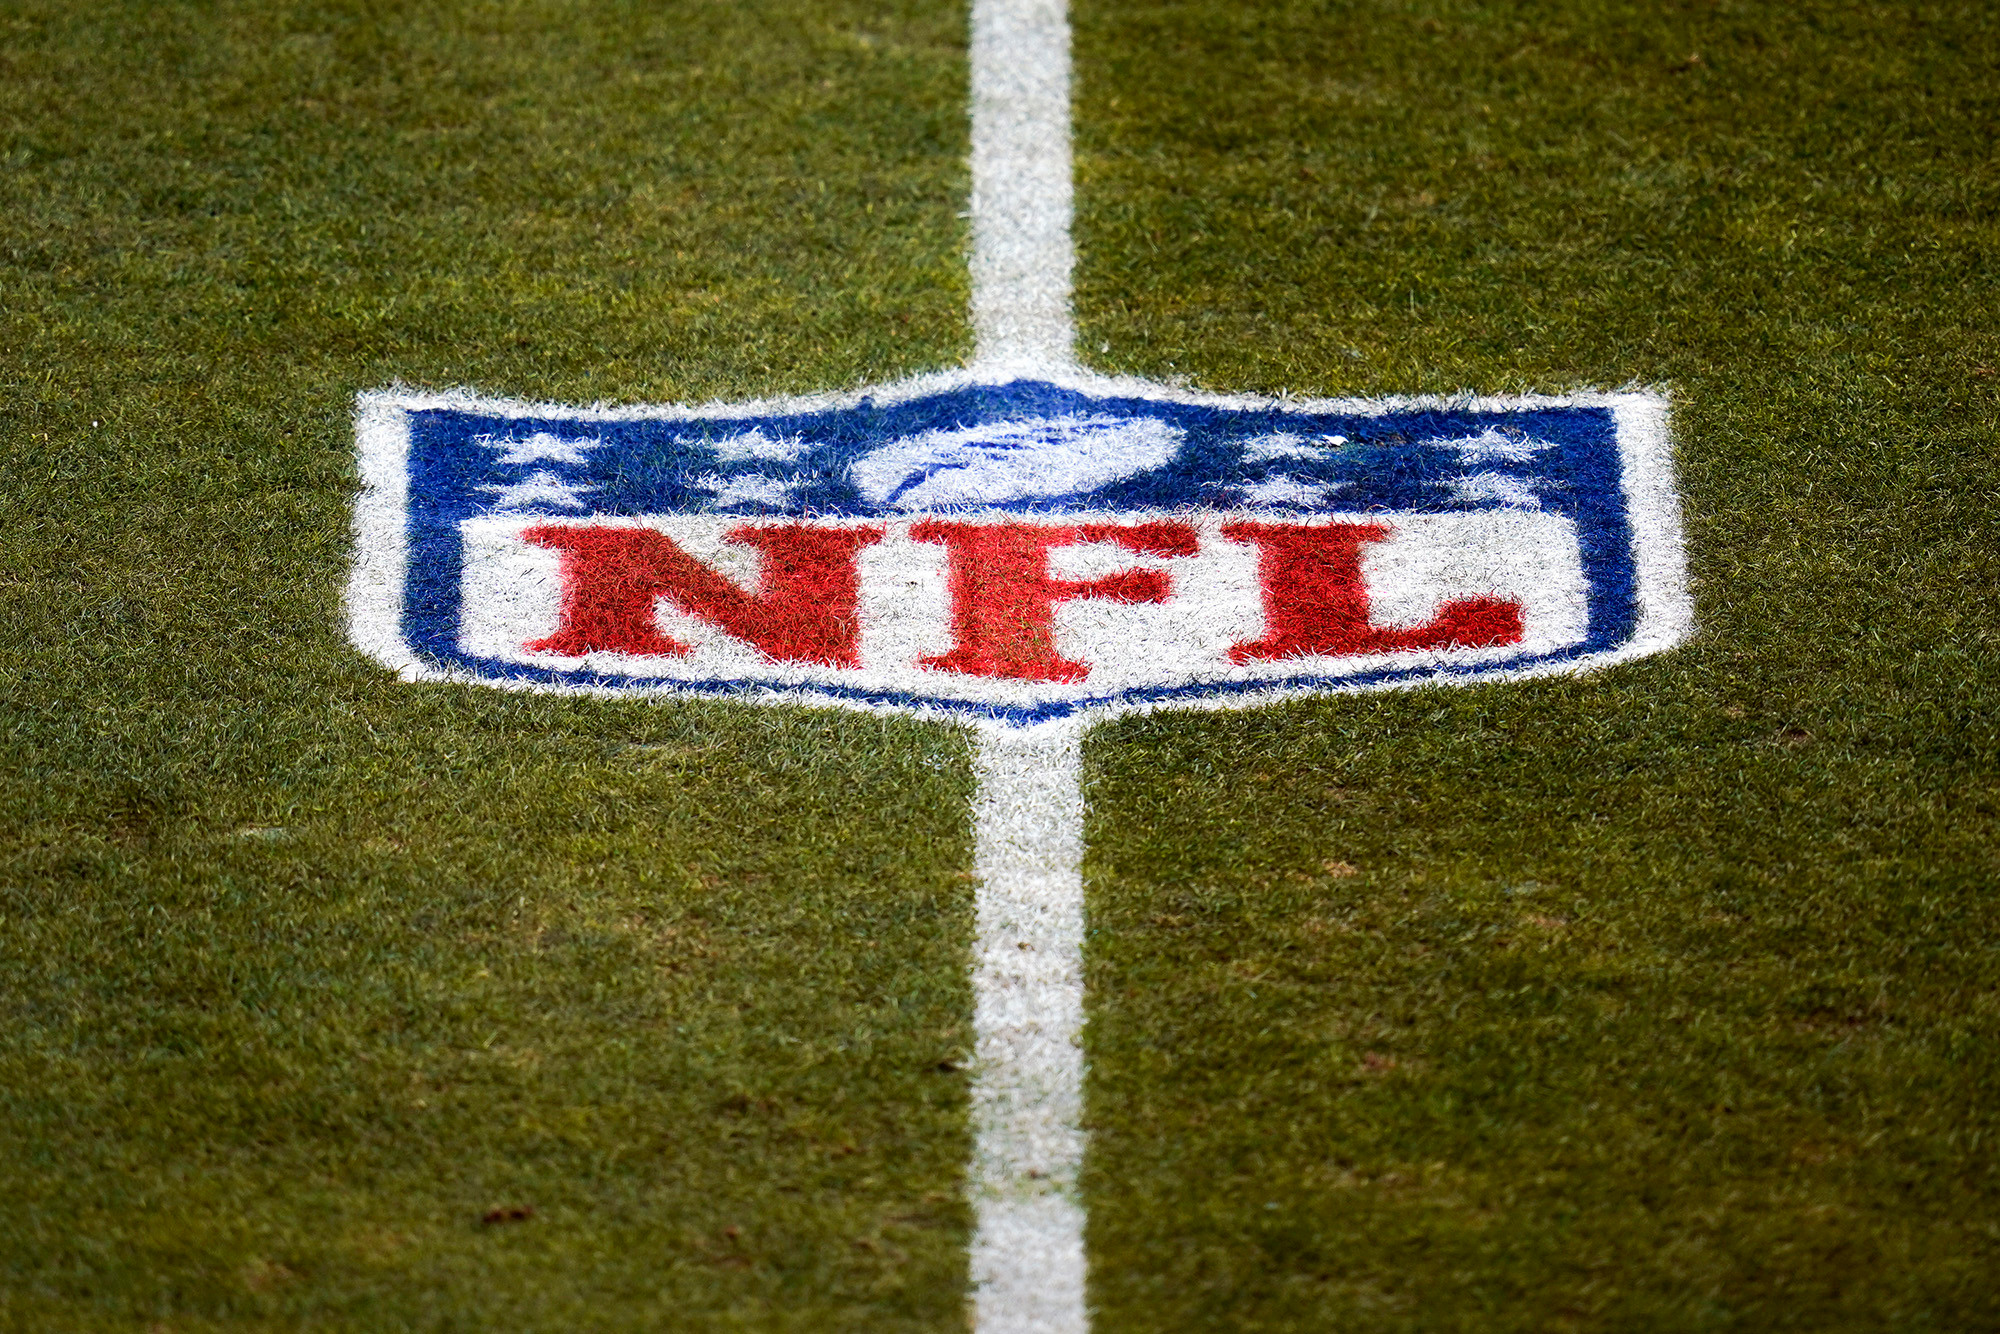 Unvaccinated NFL players will be fined for violating COVID-19 protocol